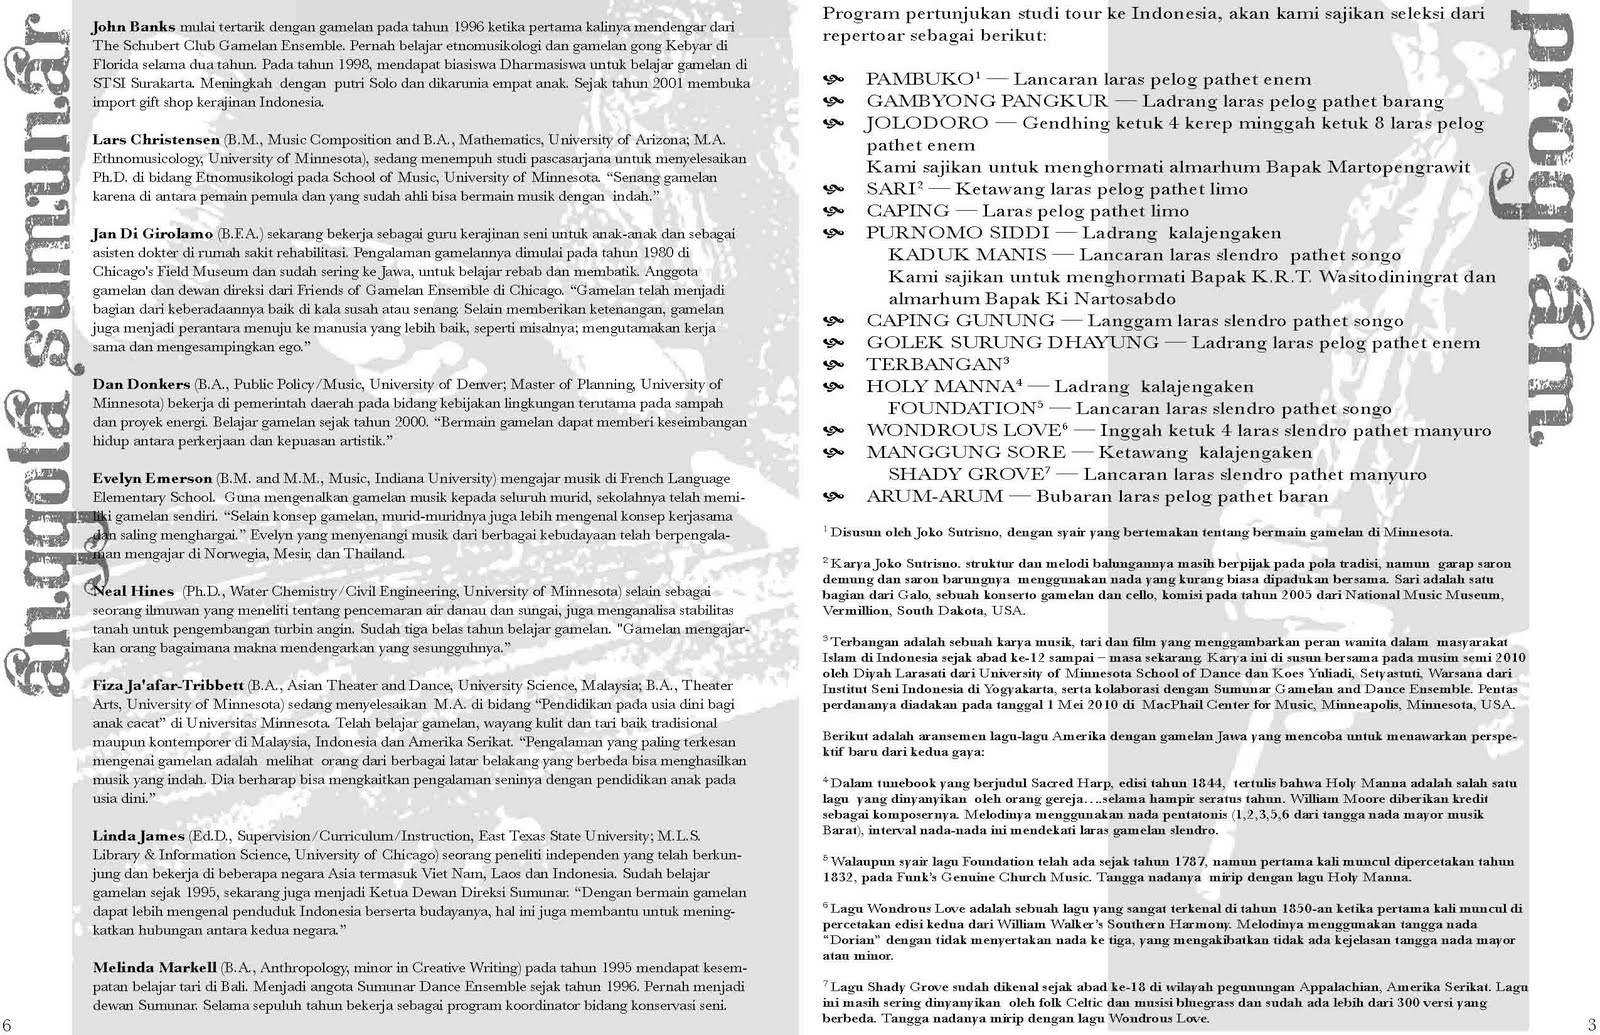 Latest Pro Bono Work For Sumunar For Their Study Tour To Indonesia This Is Their Fold Out Program